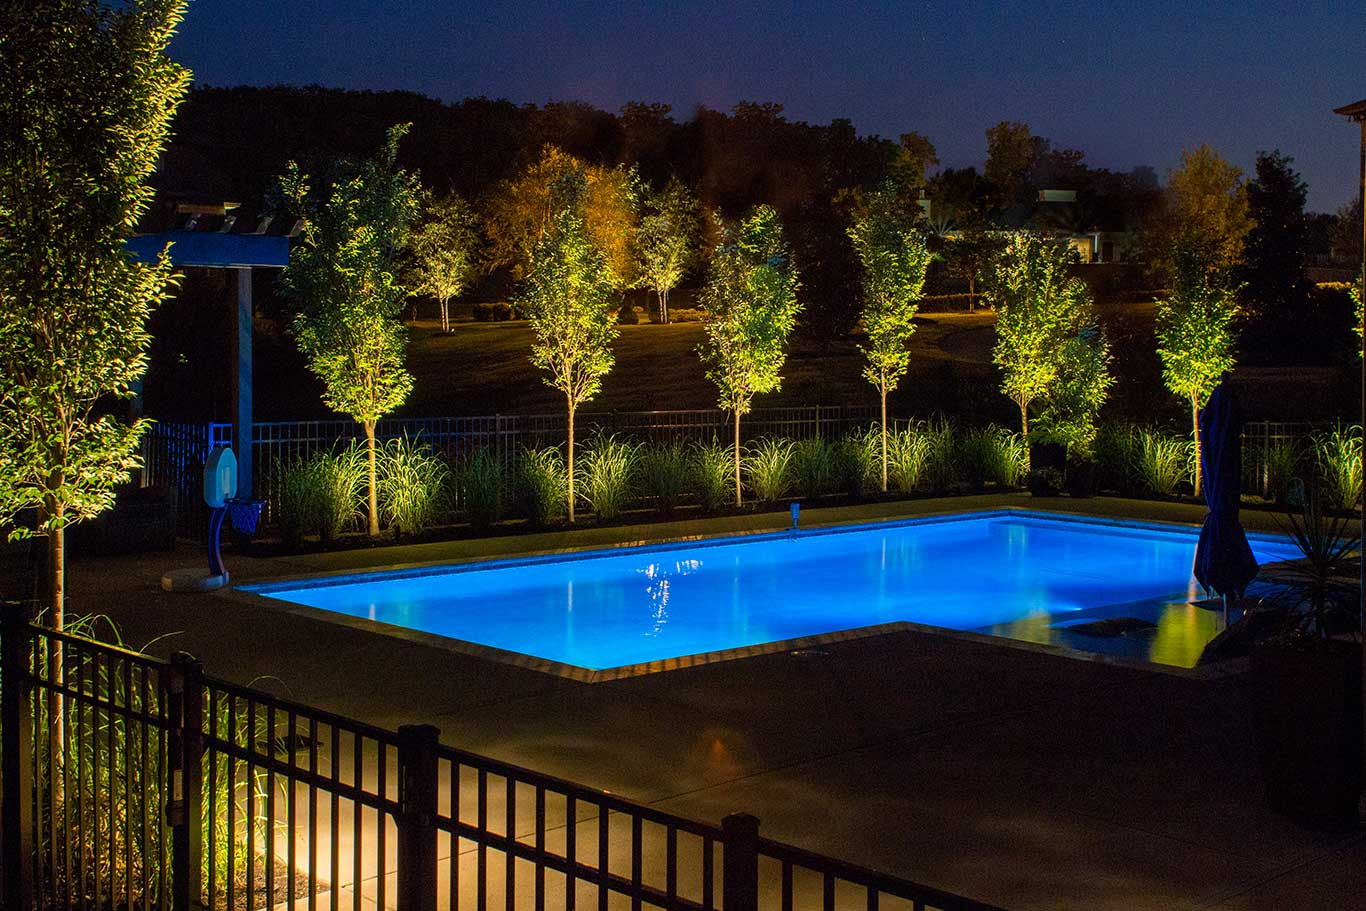 Landscape Lighting Around Pool In Brentwood, TN